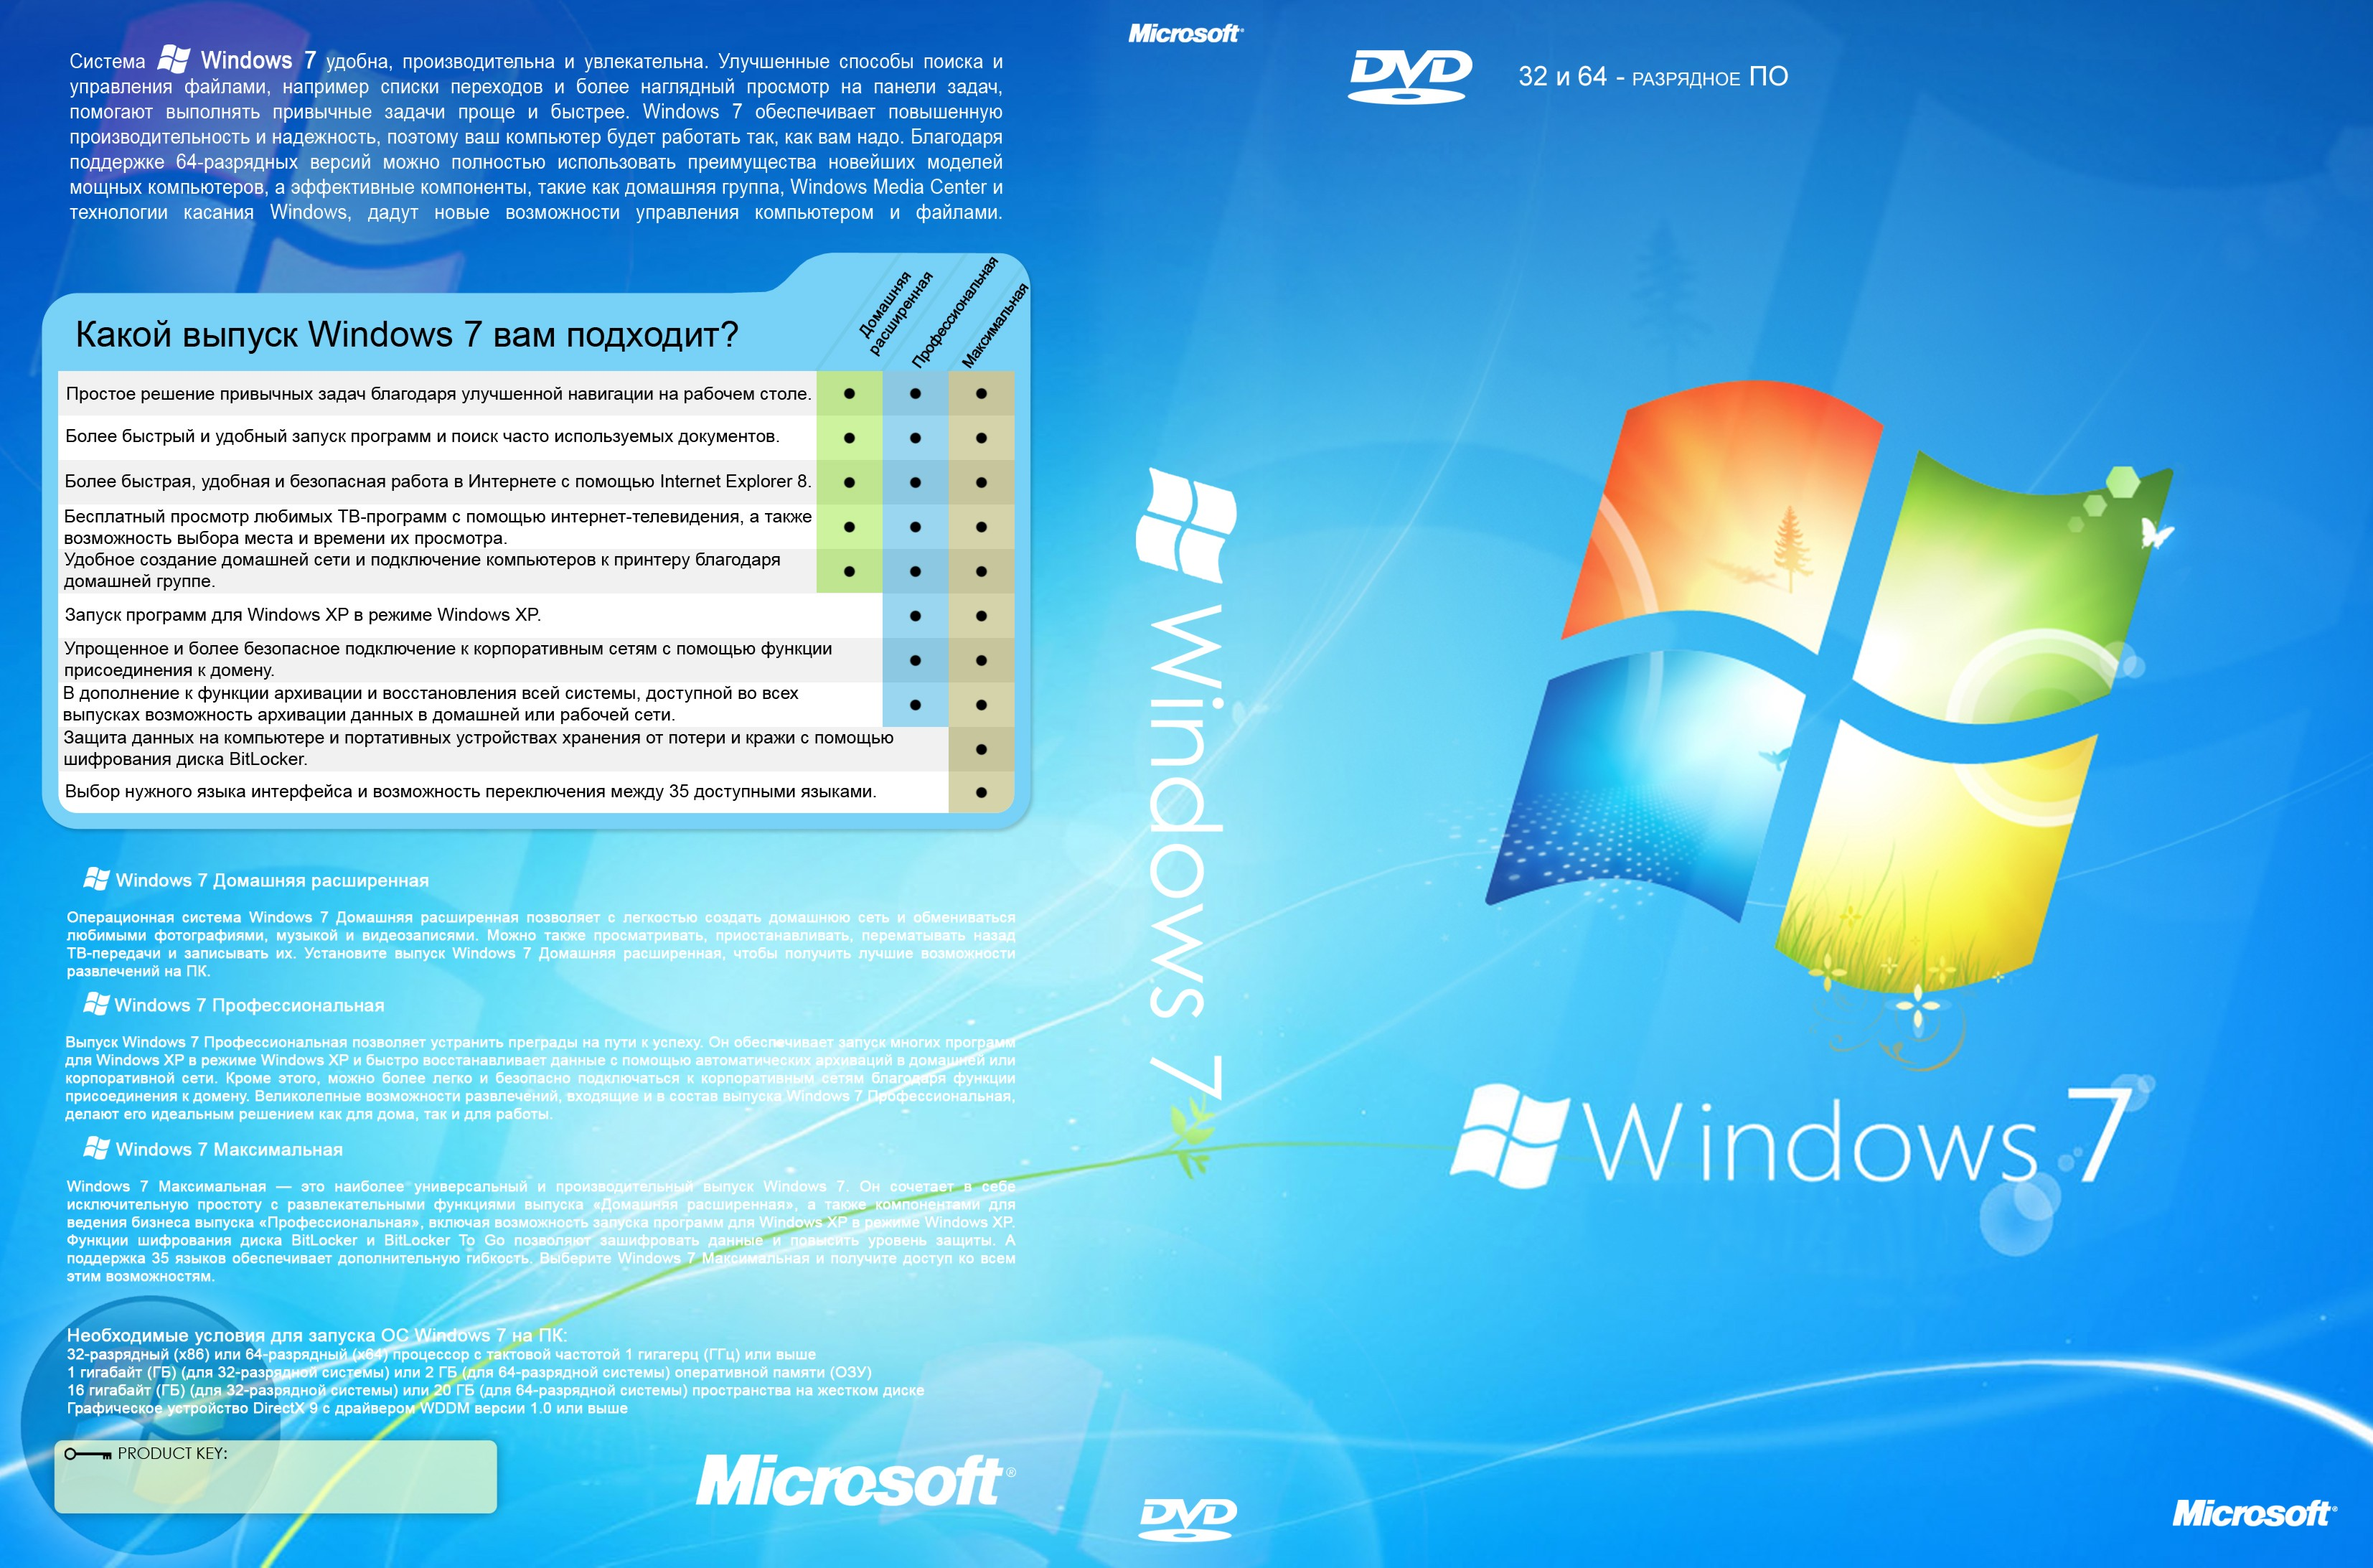 windows 7 ������� ��������� x64 2013 ��������